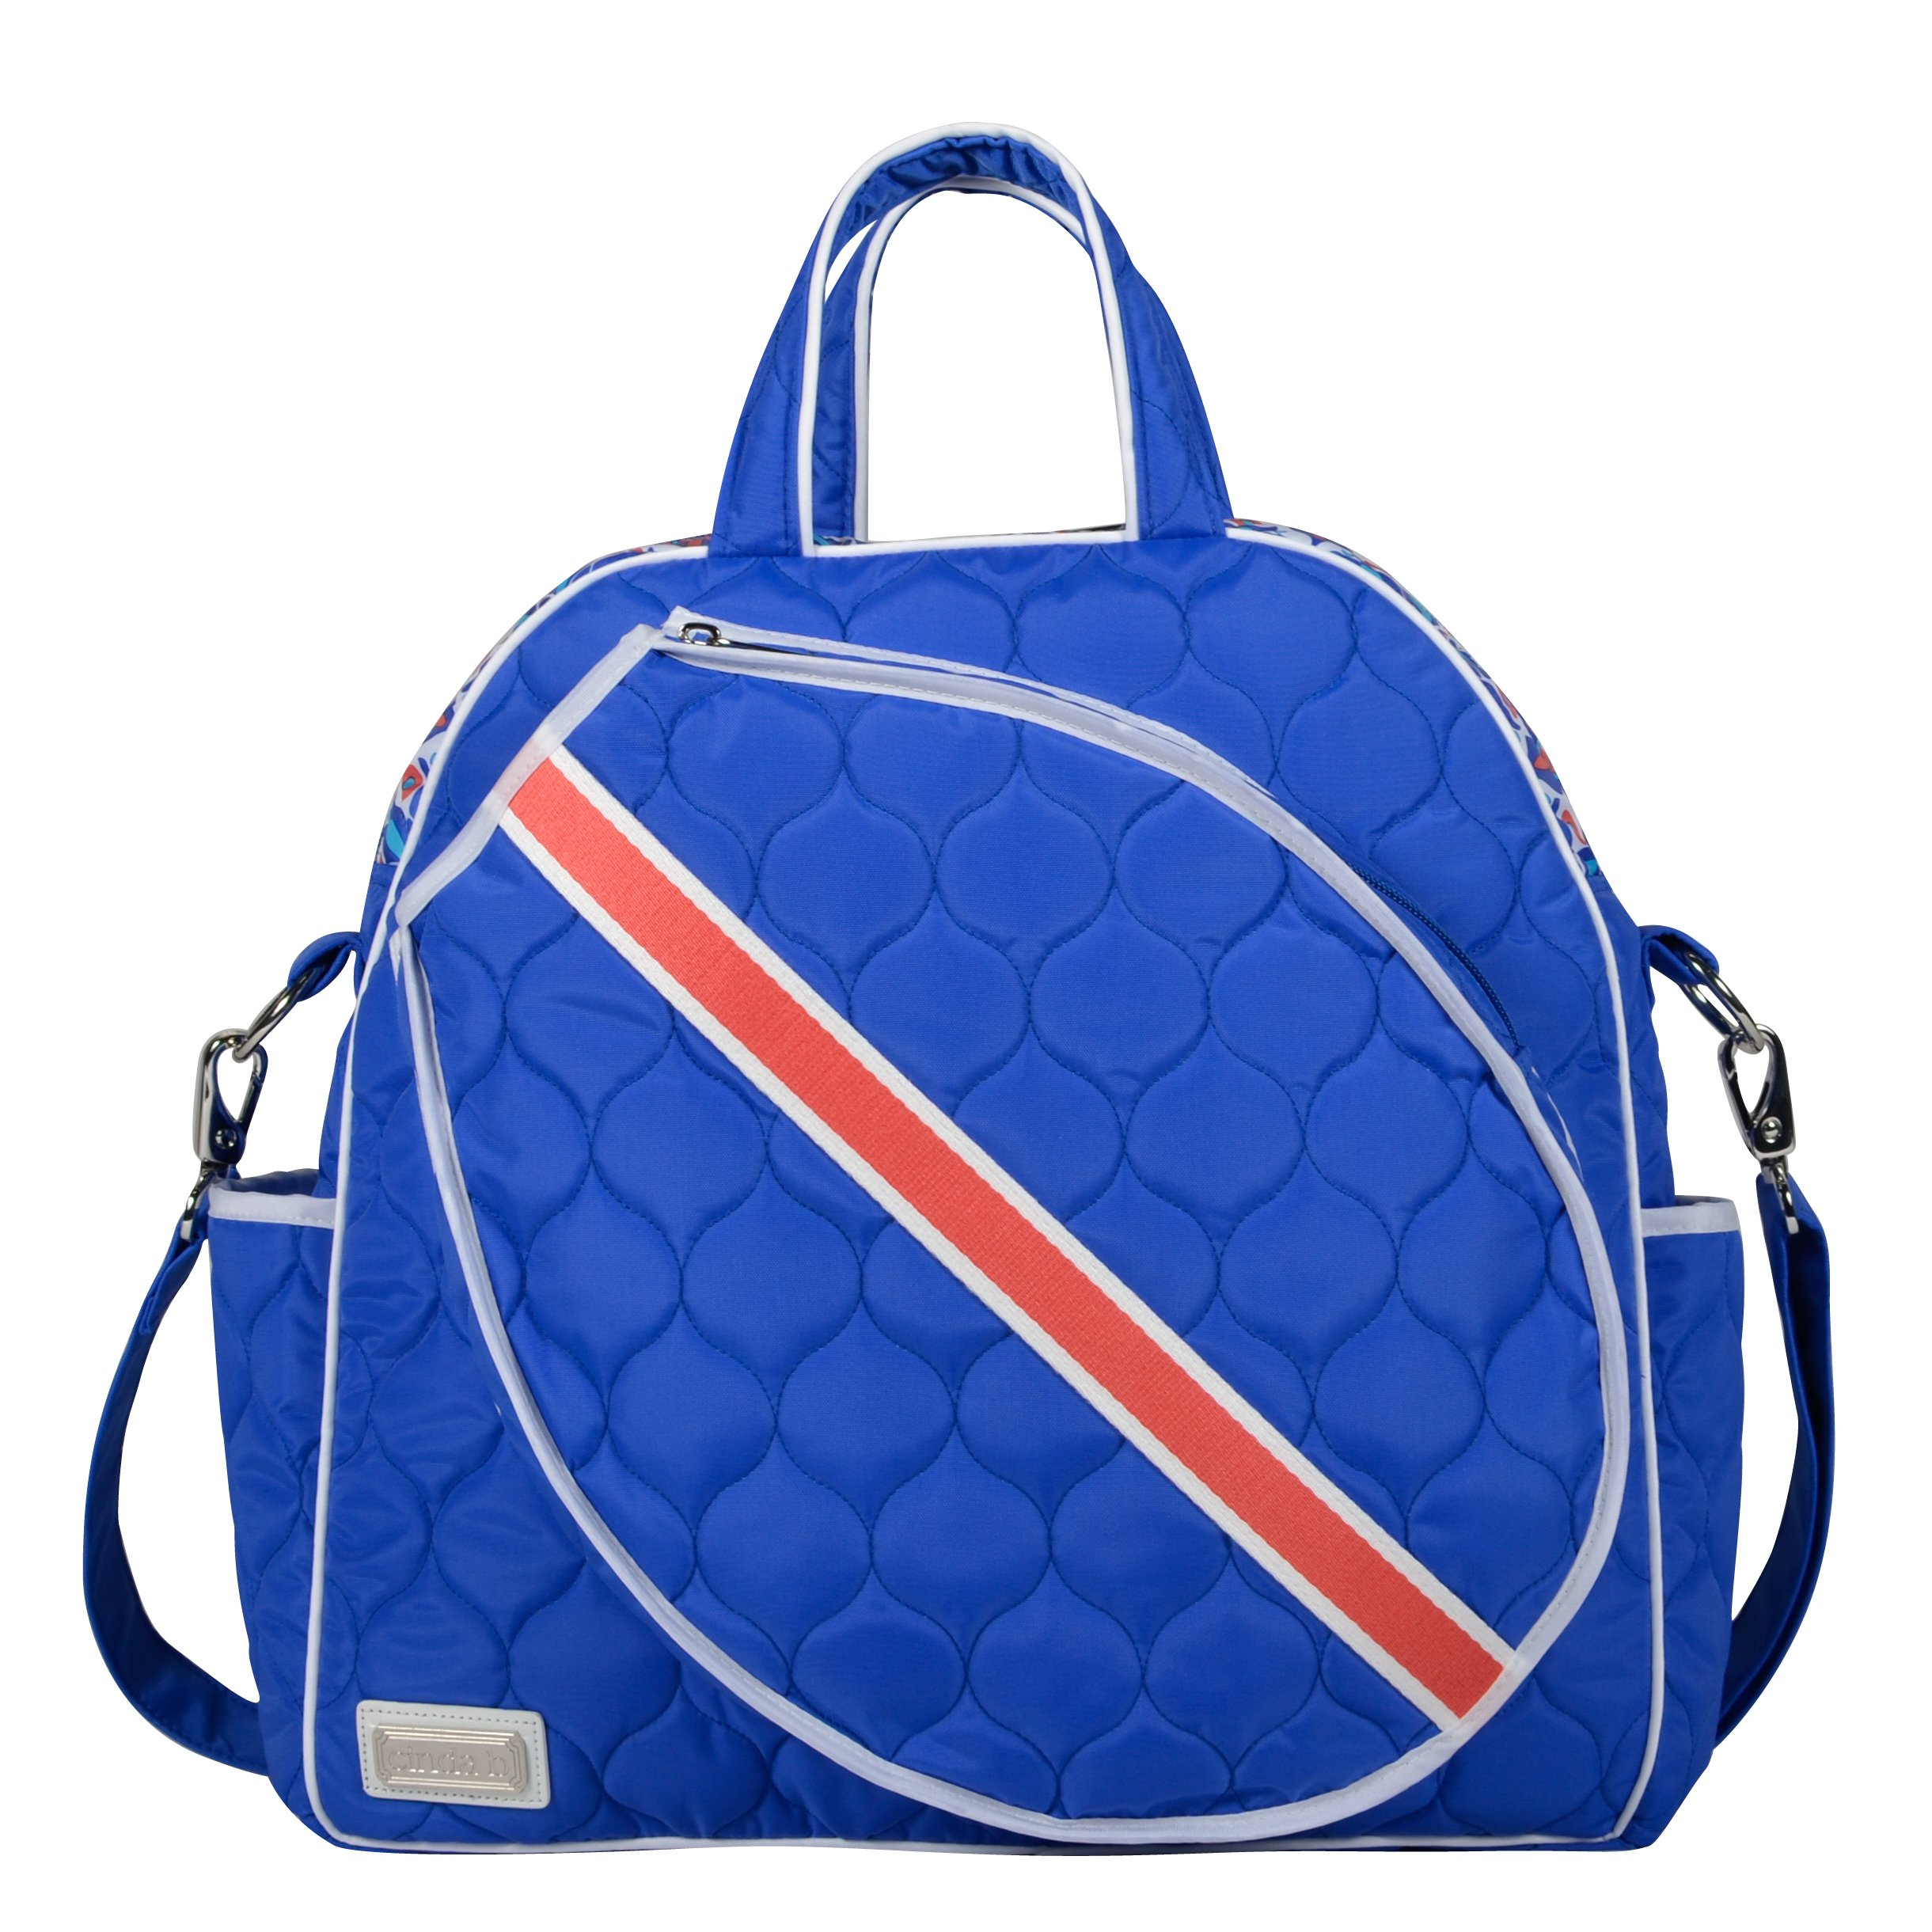 The Dourable Fabric Used Is Water Resistant Stain And Machine Washable These Eye Catching Tennis Bags For Women Are Also Made In Usa